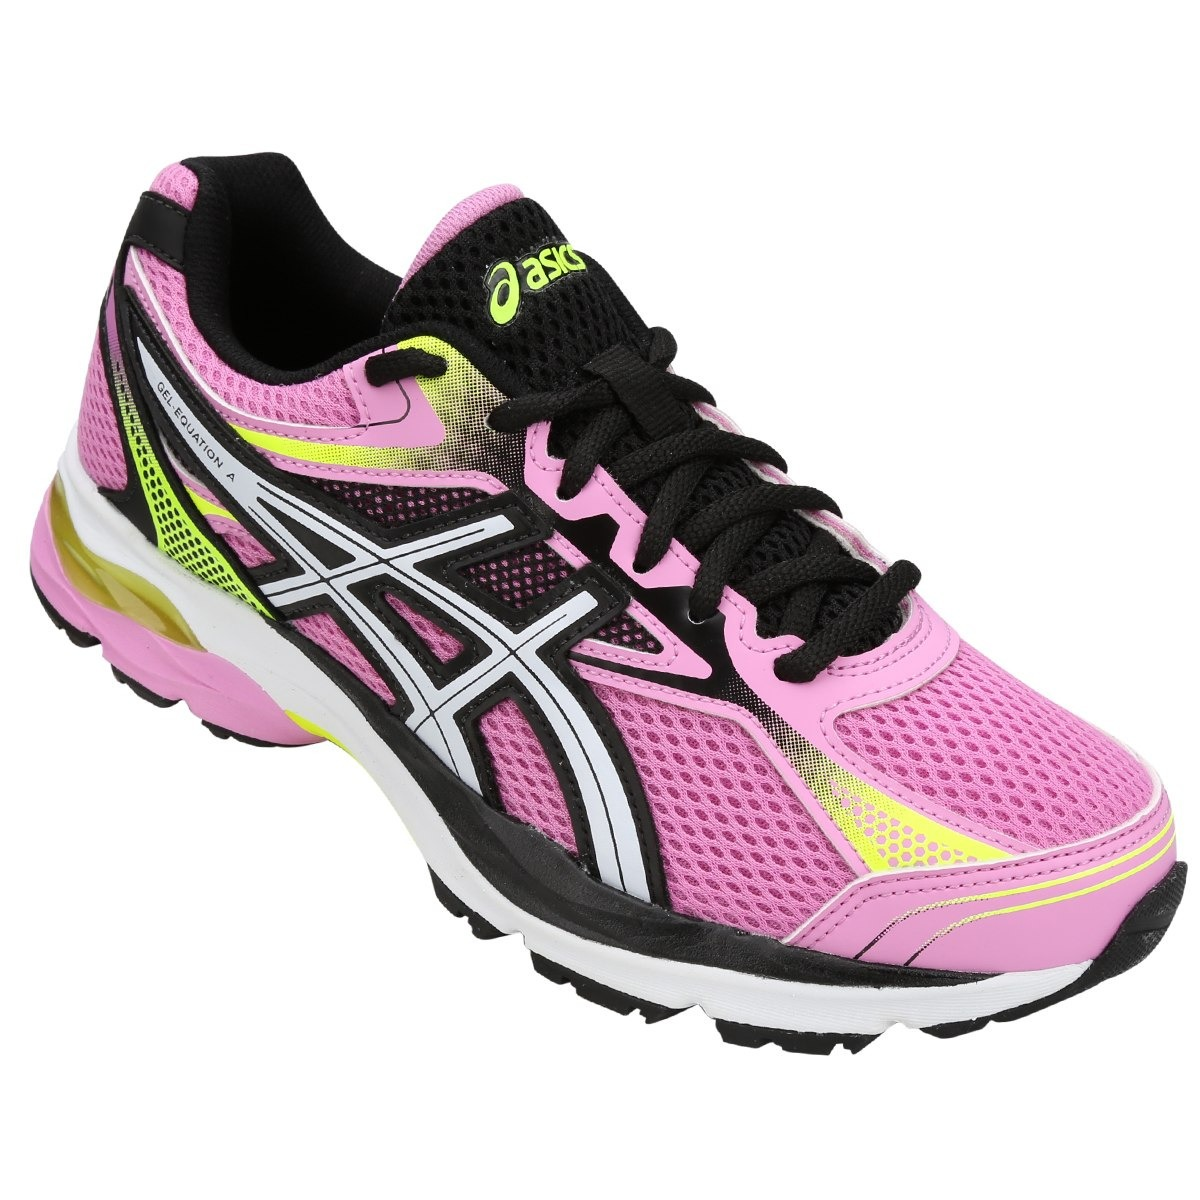 247bd1681c9 Tênis Asics Gel Equation 9 Feminino - Rosa E Preto - R  299